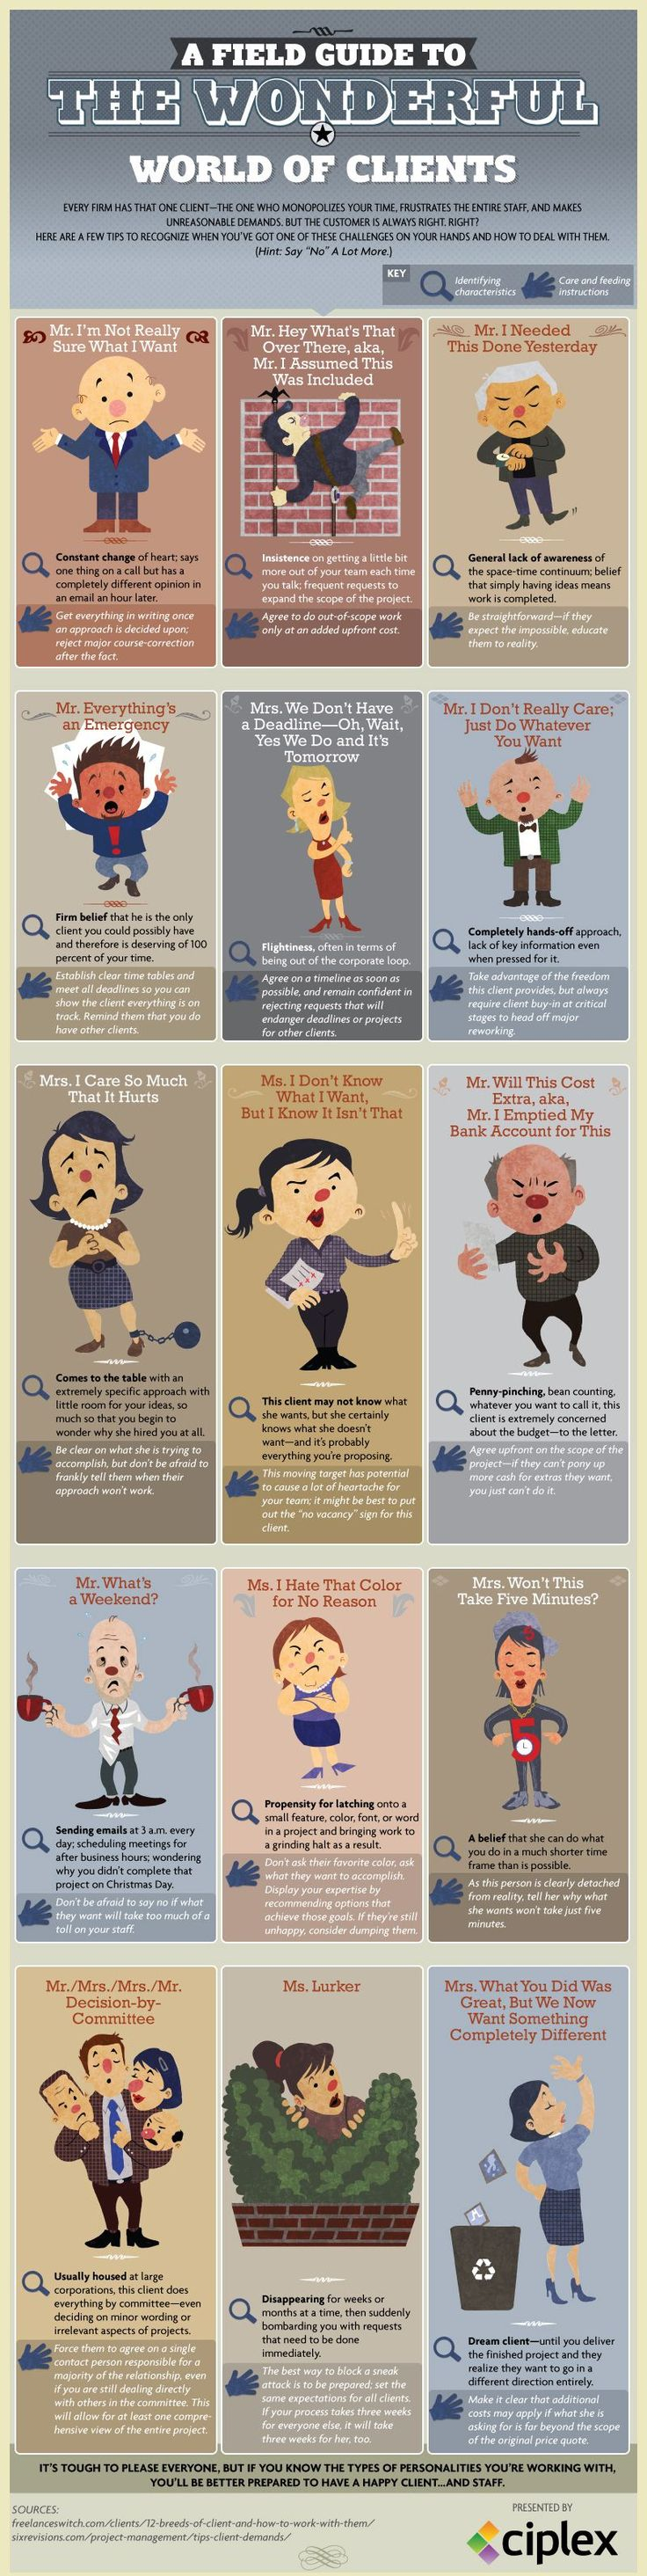 Customer Behavior - The Wonderful World of Difficult Clients [Infographic] : MarketingProfs Article